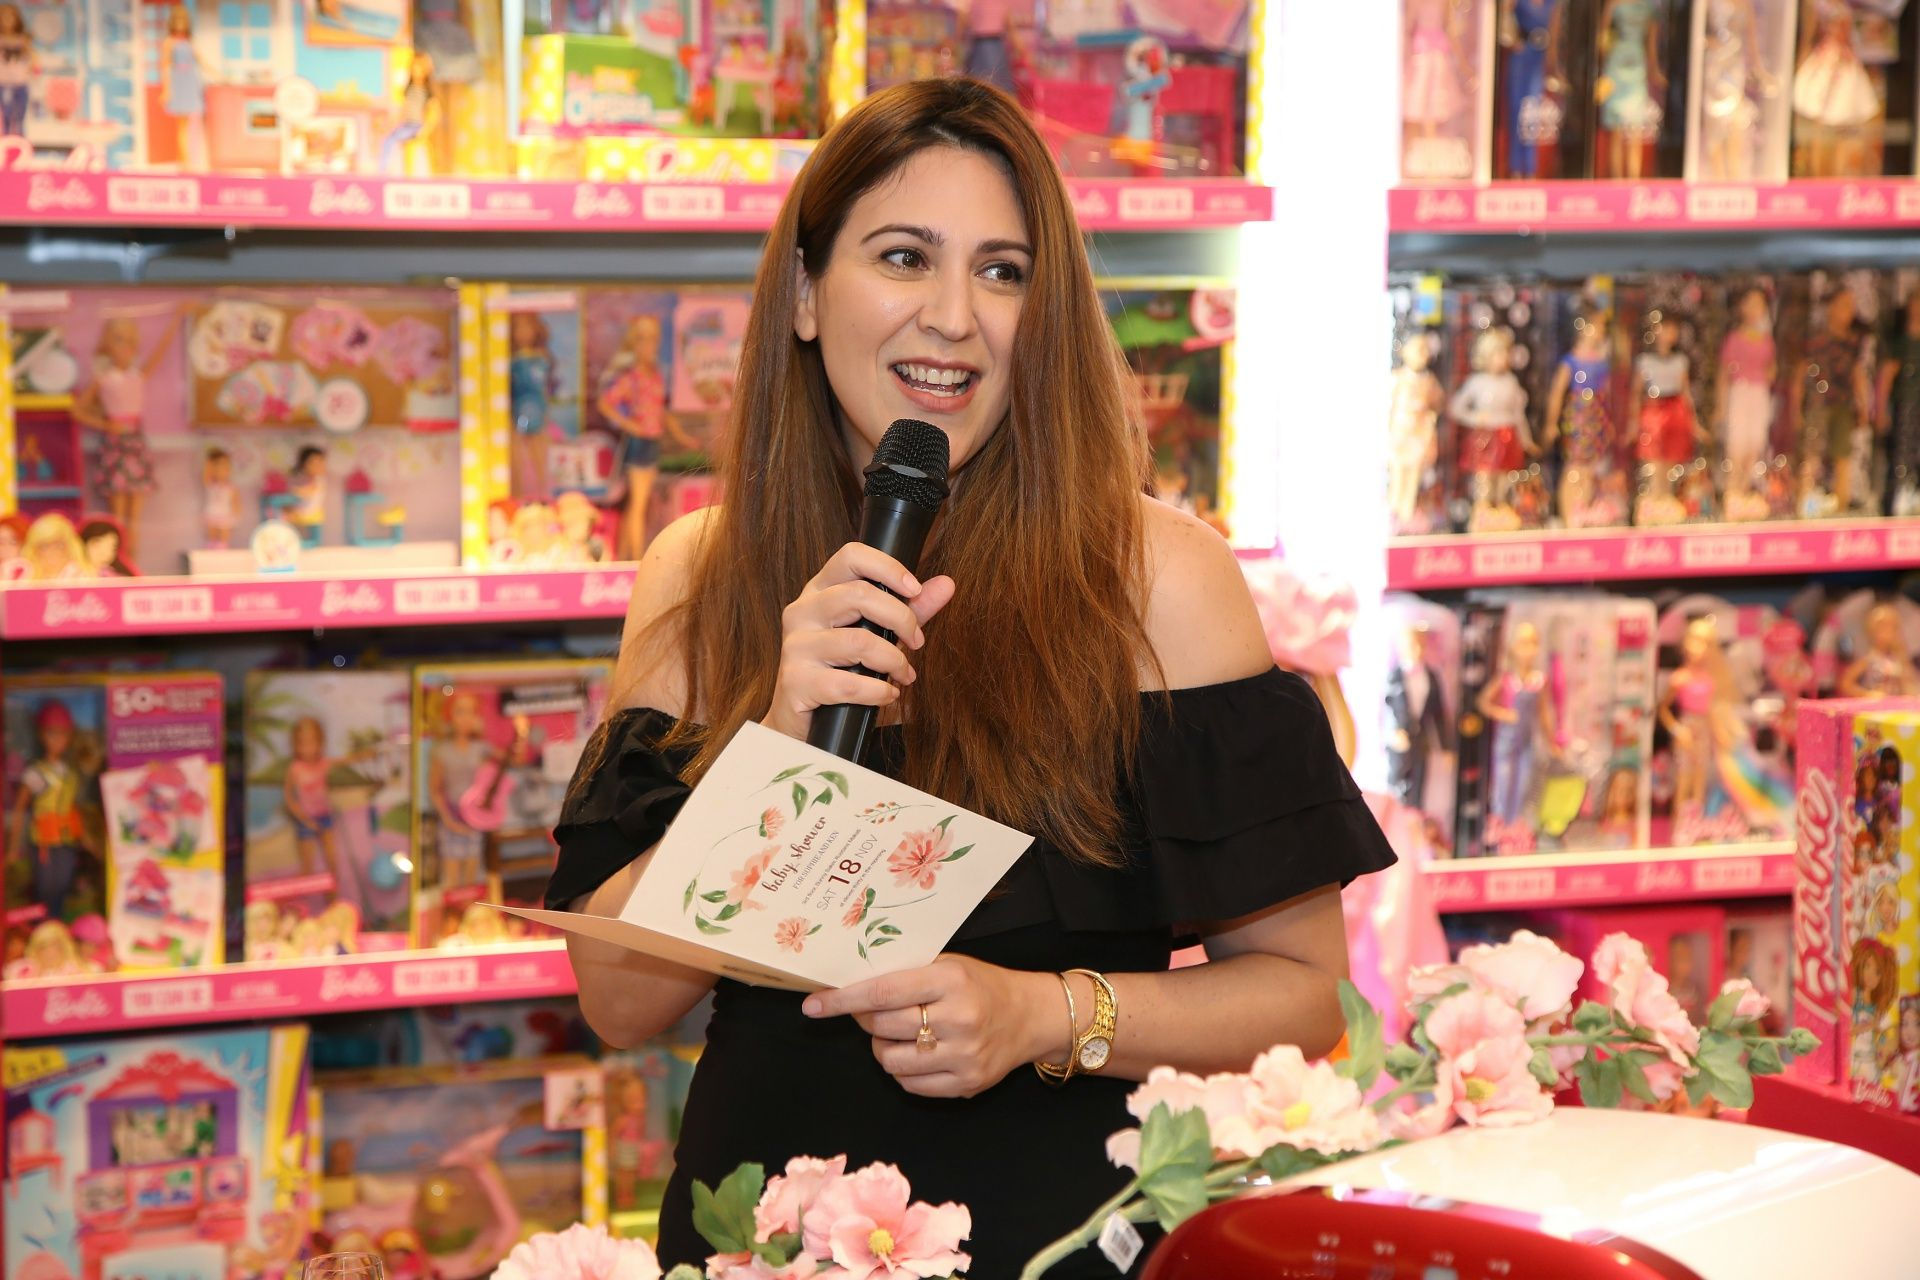 Amaya Barretto, hosting the event